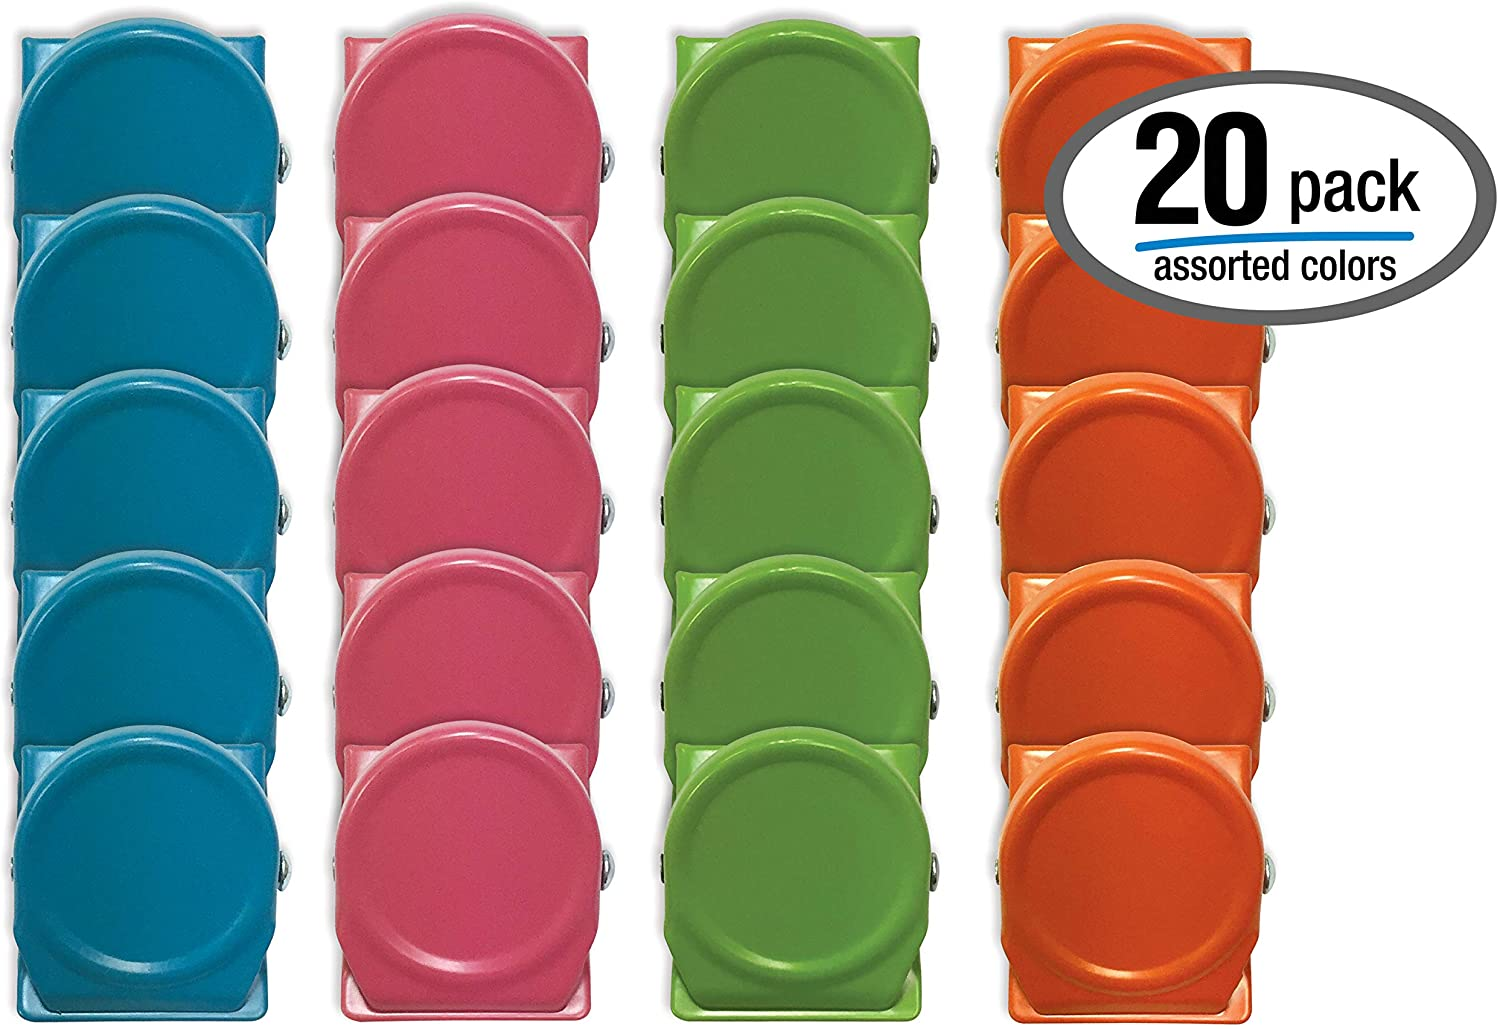 Colored Magnetic Metal Clips, 20 Pack, by Better Office Products, Steel, 1.2 Inch, Assorted Vibrant Colors, 20 Pieces